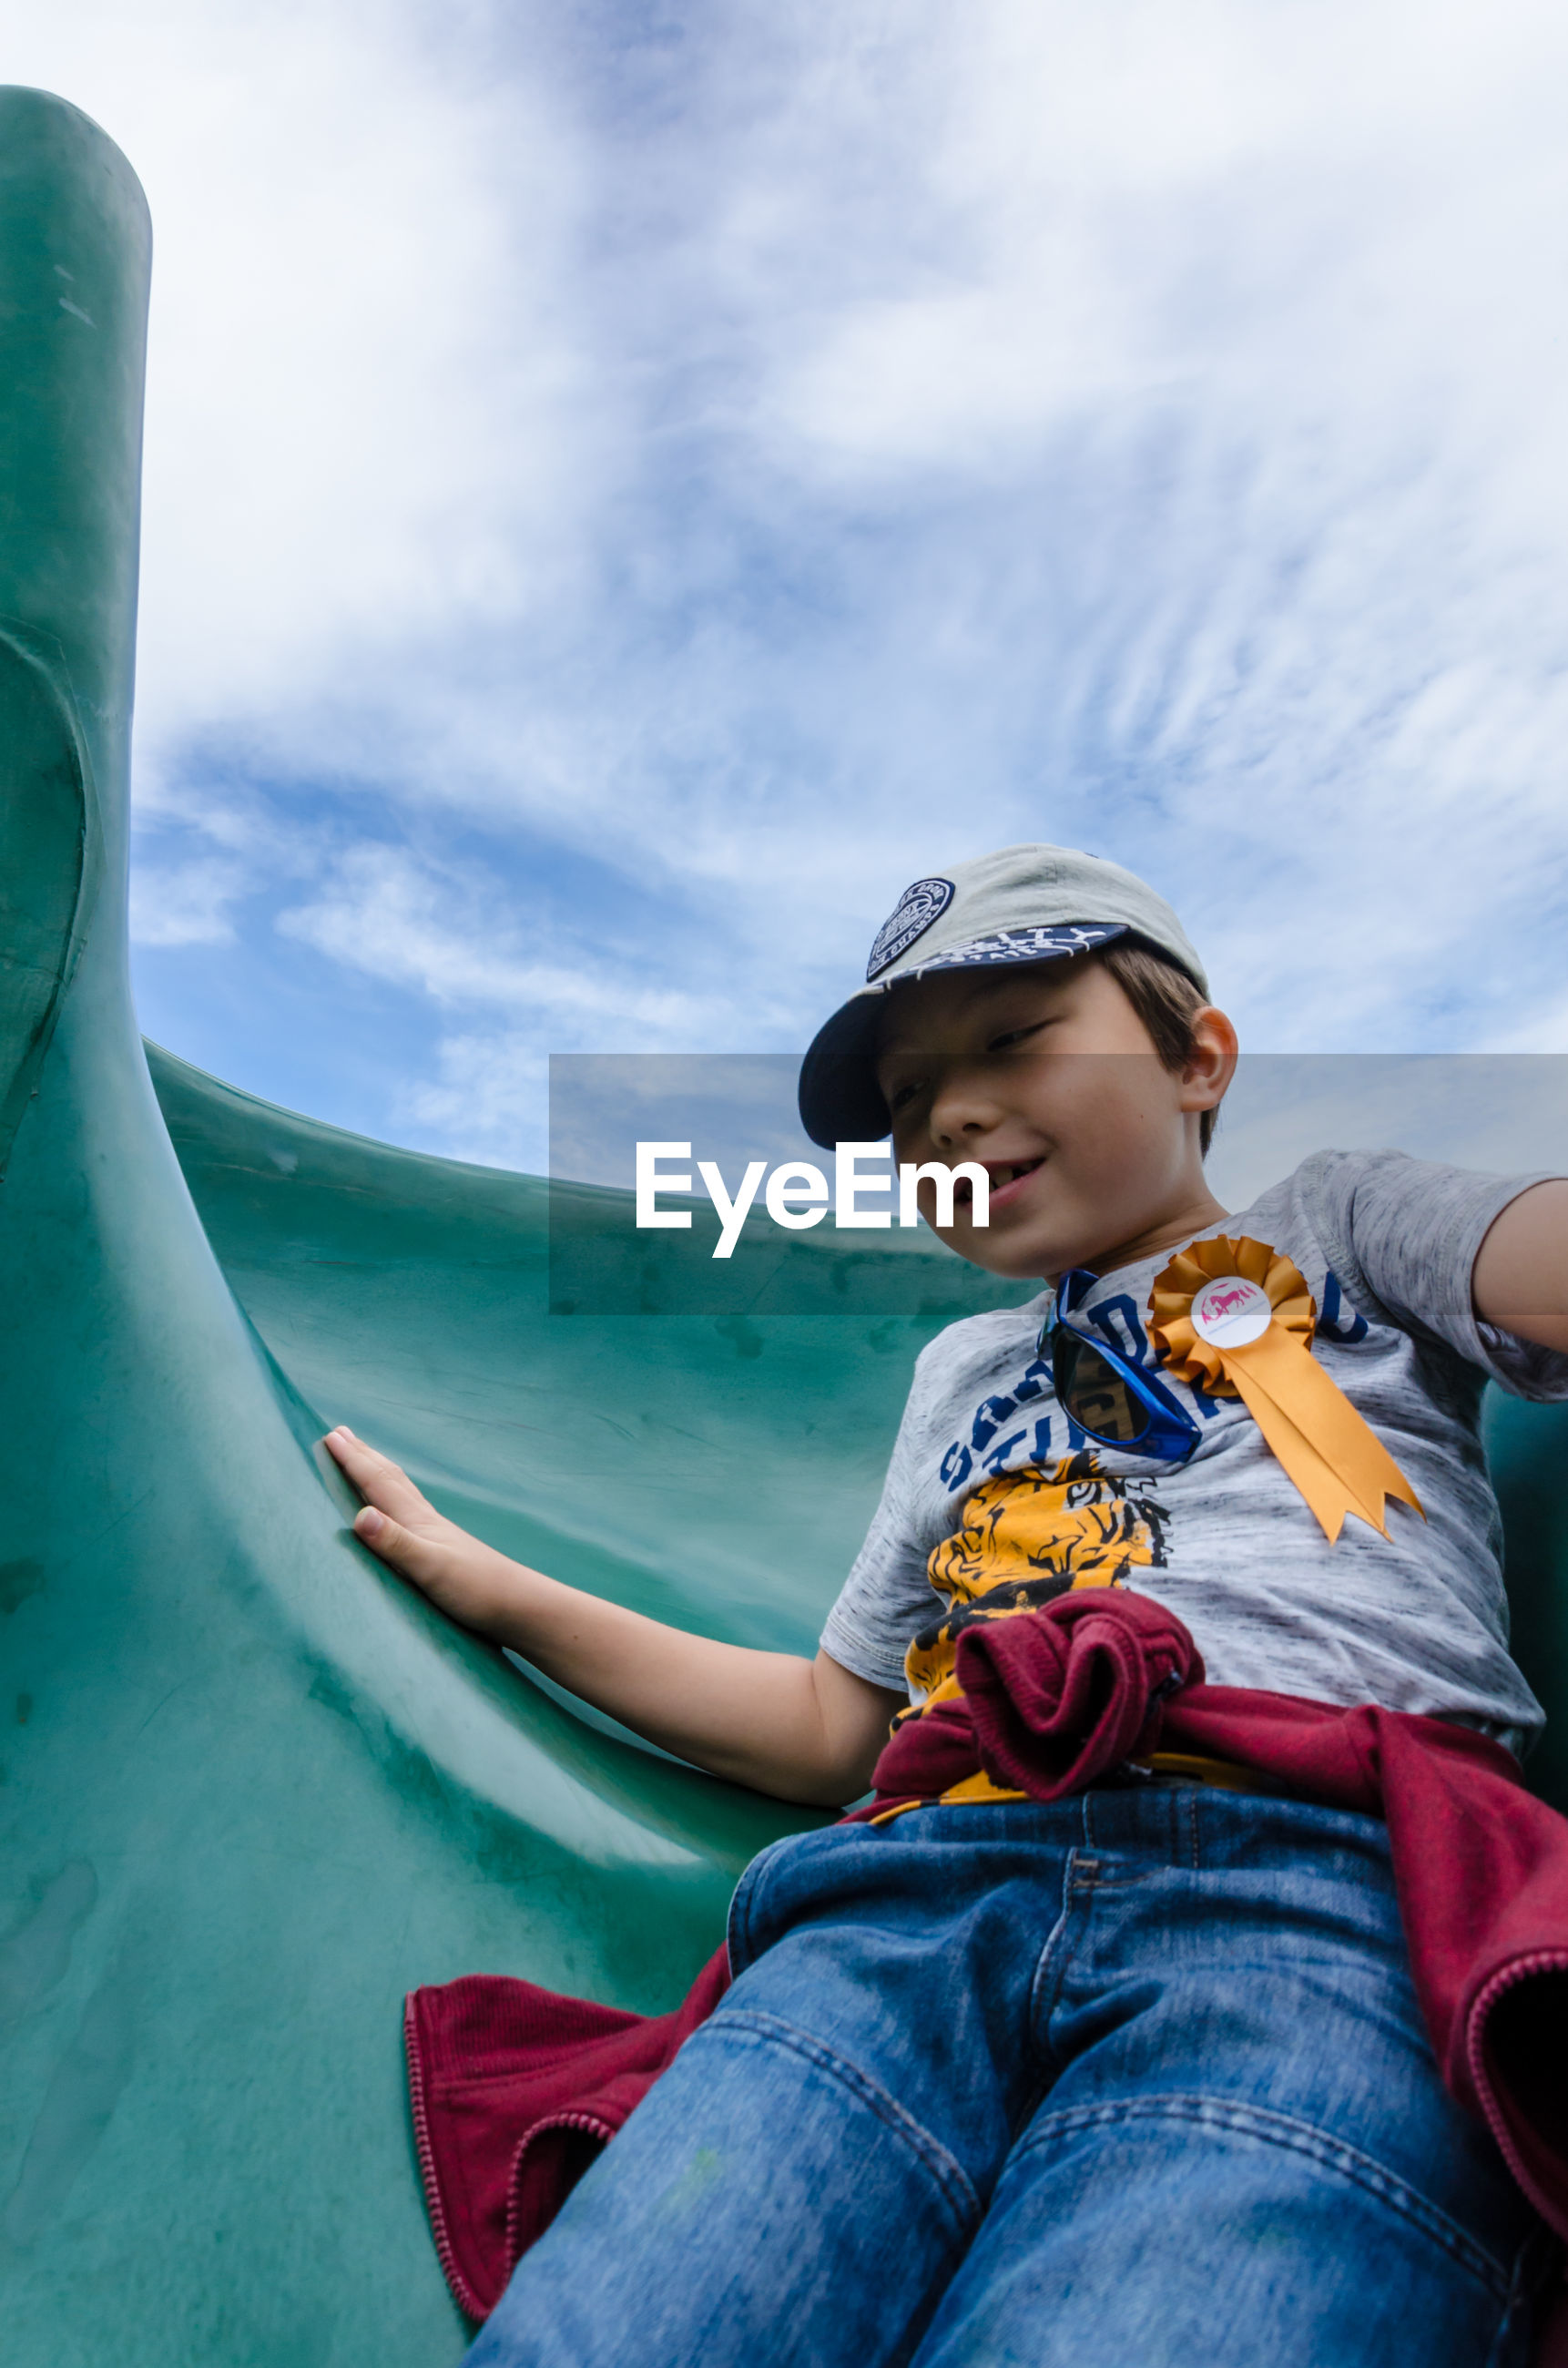 Low angle view of happy boy enjoying slide against sky